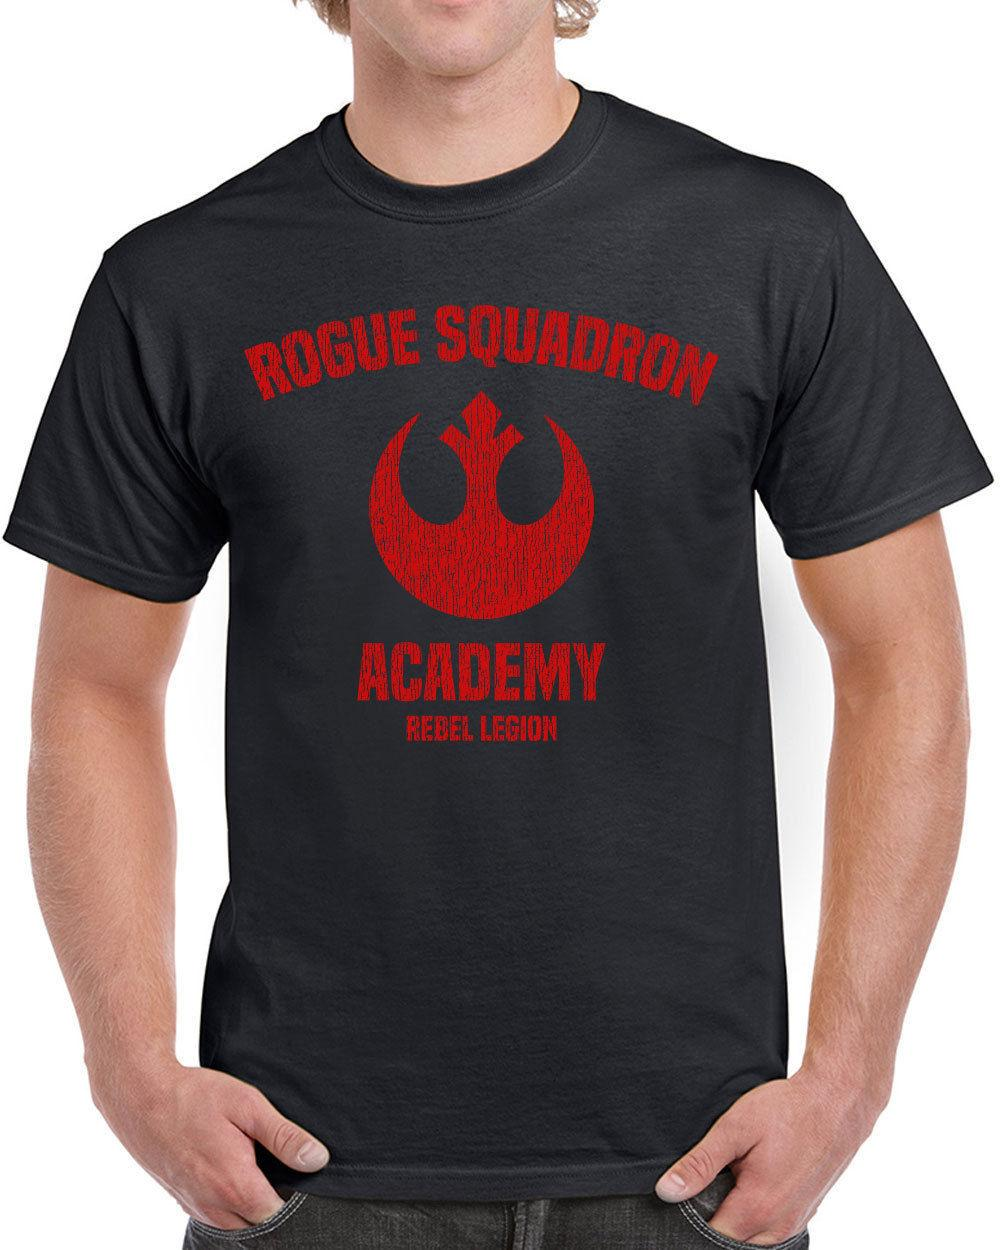 574763891b7d 618 Rogue Squadron Academy Mens T Shirt Star Geek Nerd Wars Jedi Cosplay  Costume Buy Cool Shirts Ordering T Shirts From Amesion, $11.45| DHgate.Com